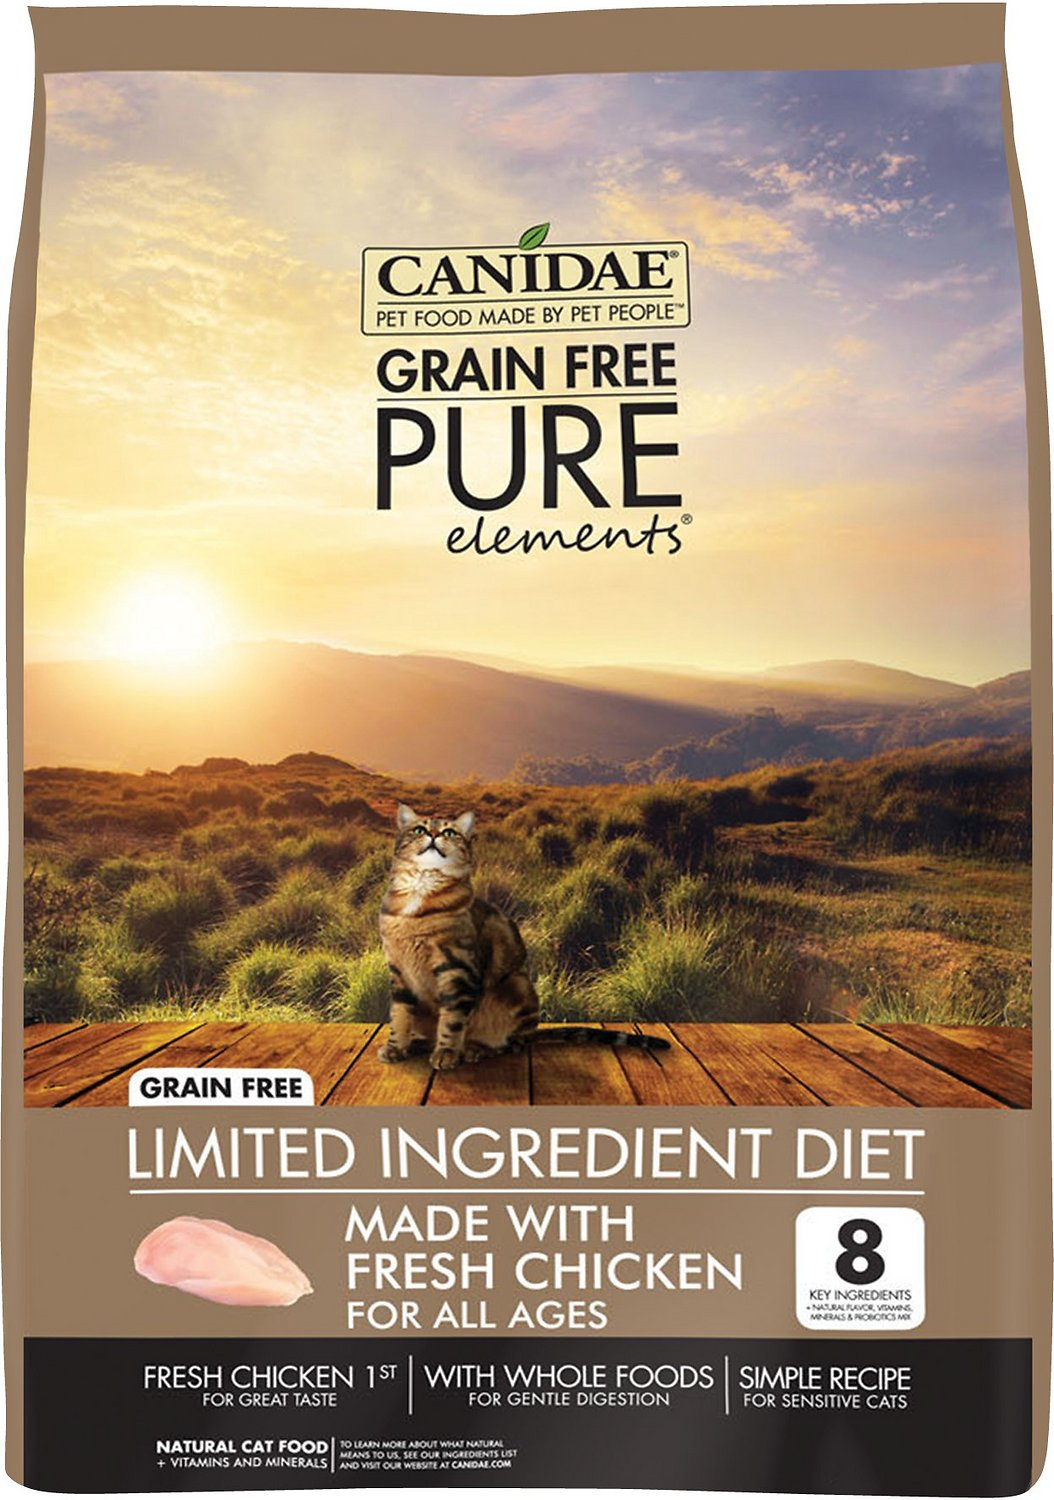 Canidae Grain-Free PURE Elements with Chicken Limited Ingredient Diet Dry Cat Food Image